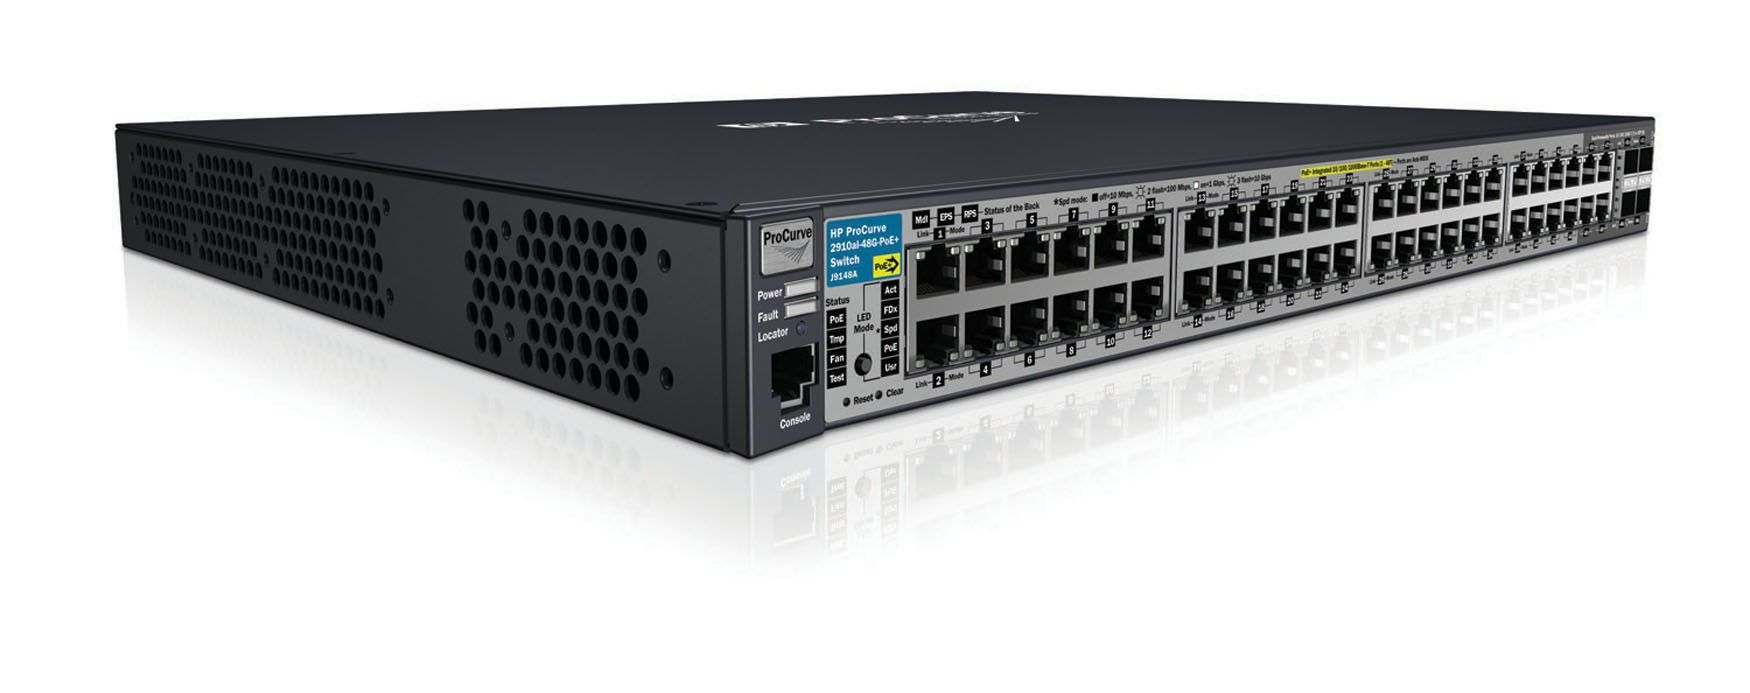 Коммутатор HP Procurve 2910al-48G-PoEal Switch (44 ports 10/100/1000 PoE+, 4 10/100/1000 PoE+ or SFP, 4 10-GbE opt., Managed, Layer 3 static, Stackable 19')(repl. for JE063A)